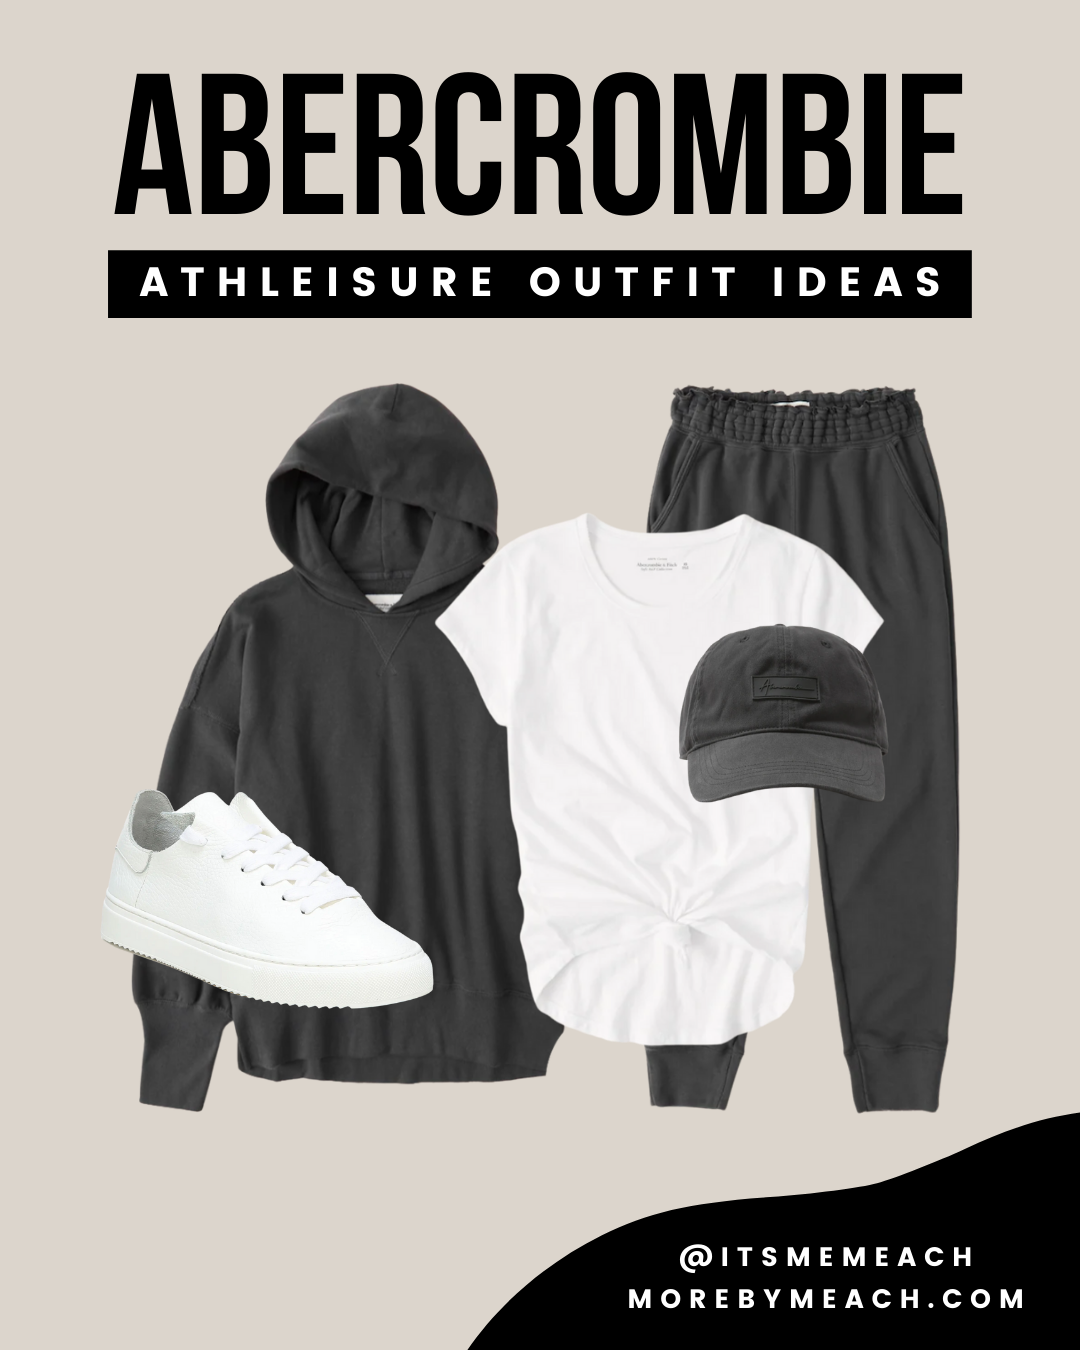 A charcoal gray sweatpants outfit using all Abercrombie pieces.